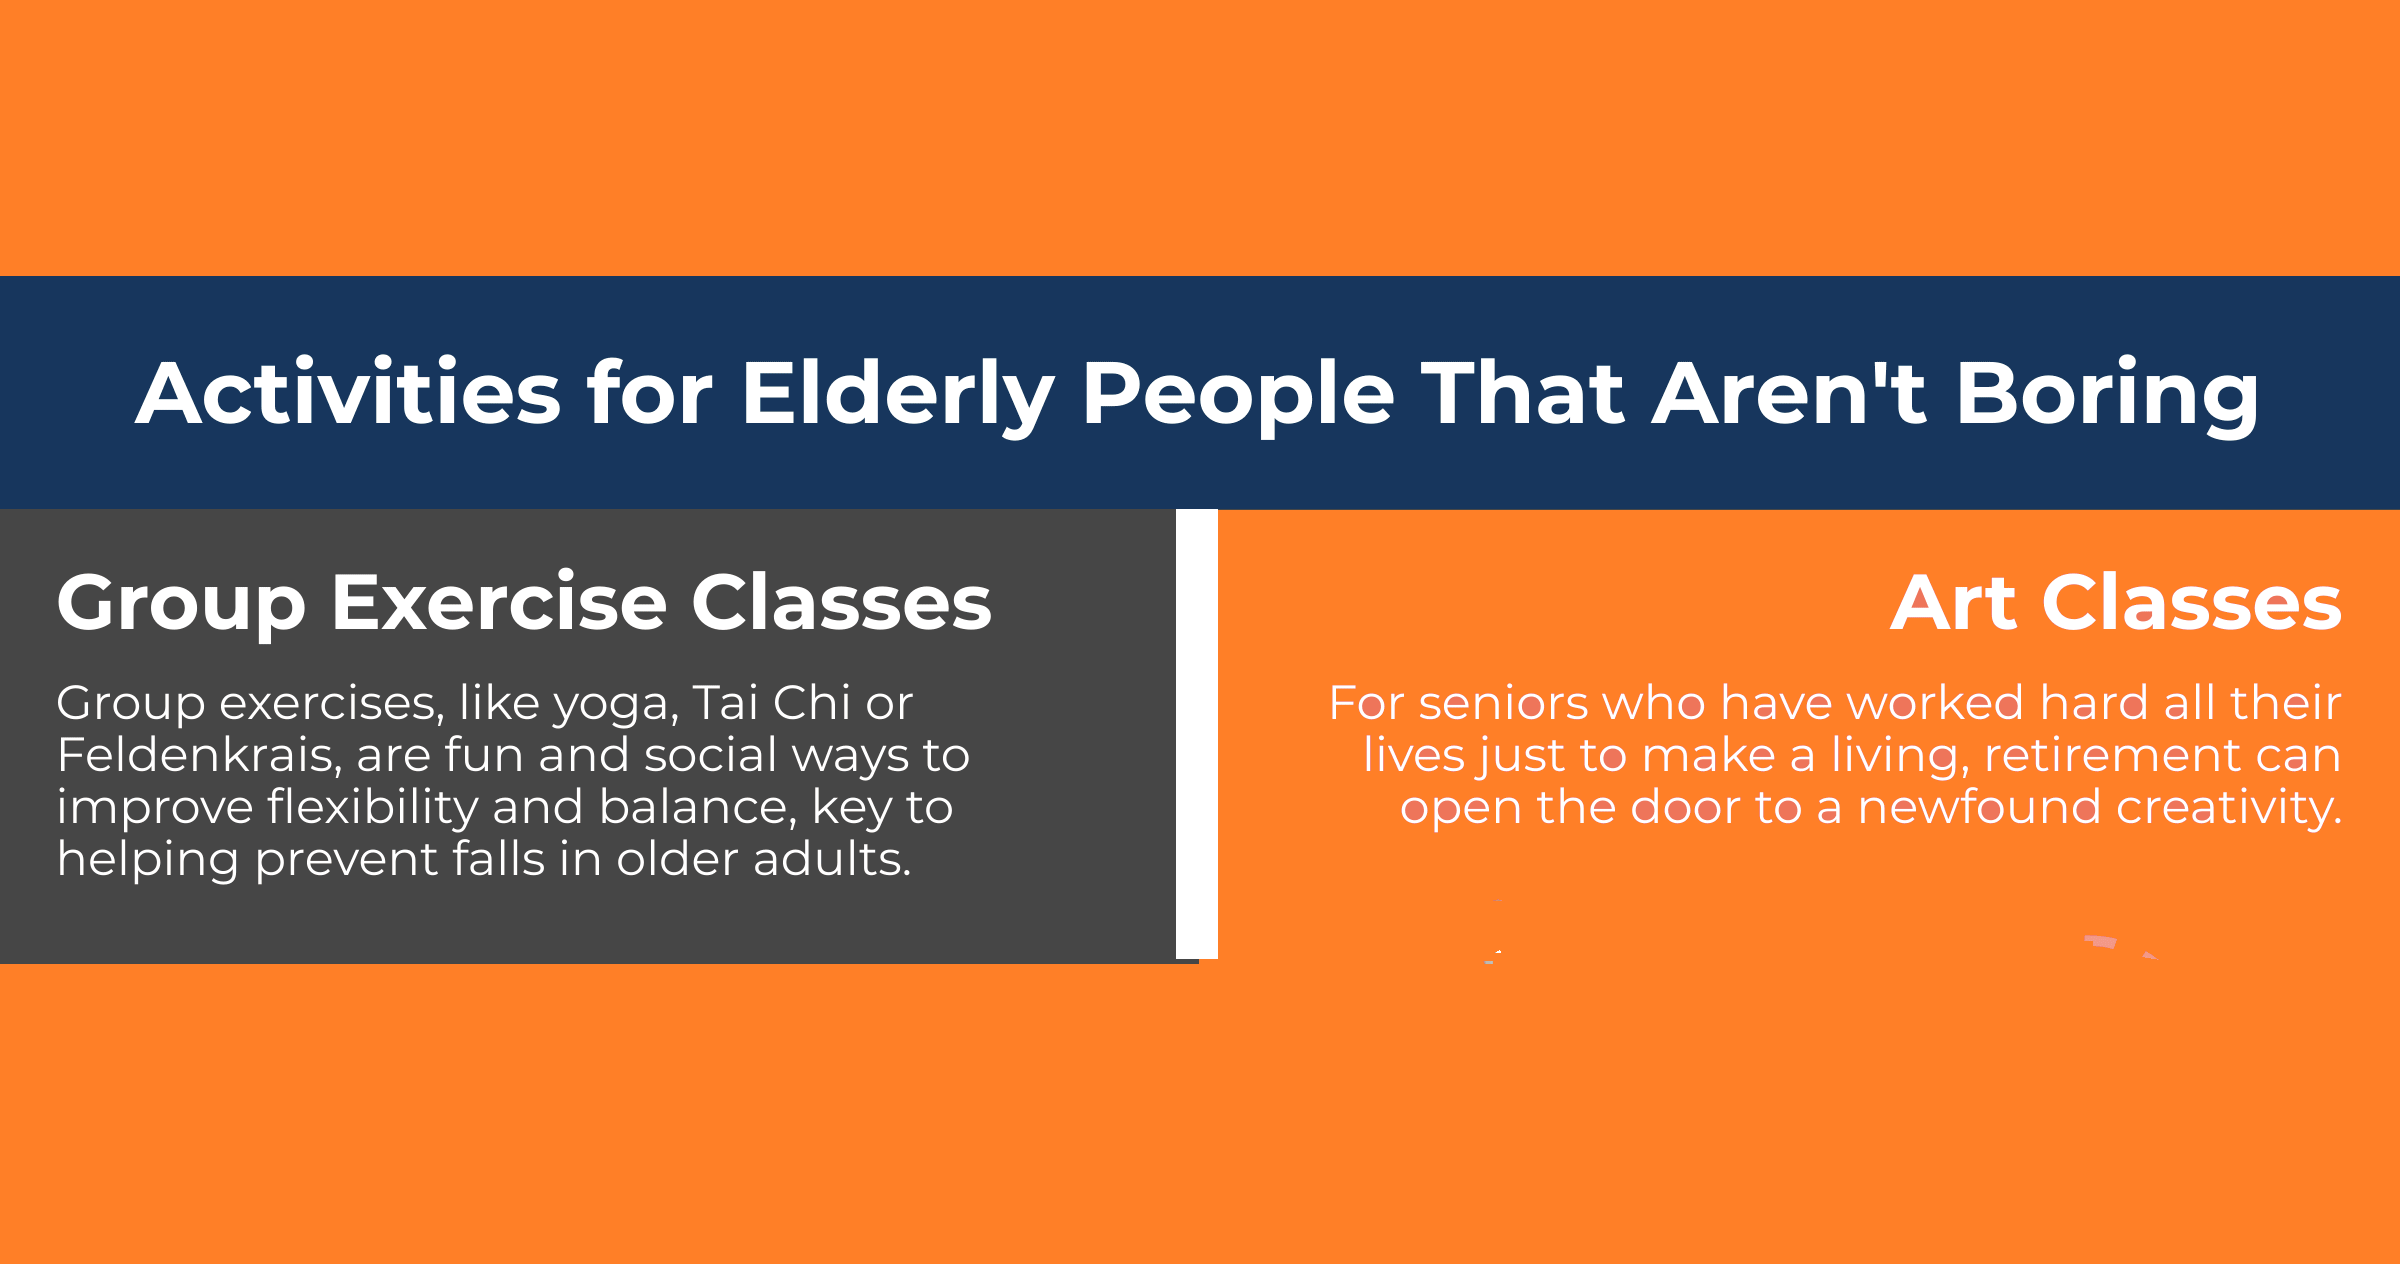 Activities for Elderly People that Aren't Boring [Infographic]